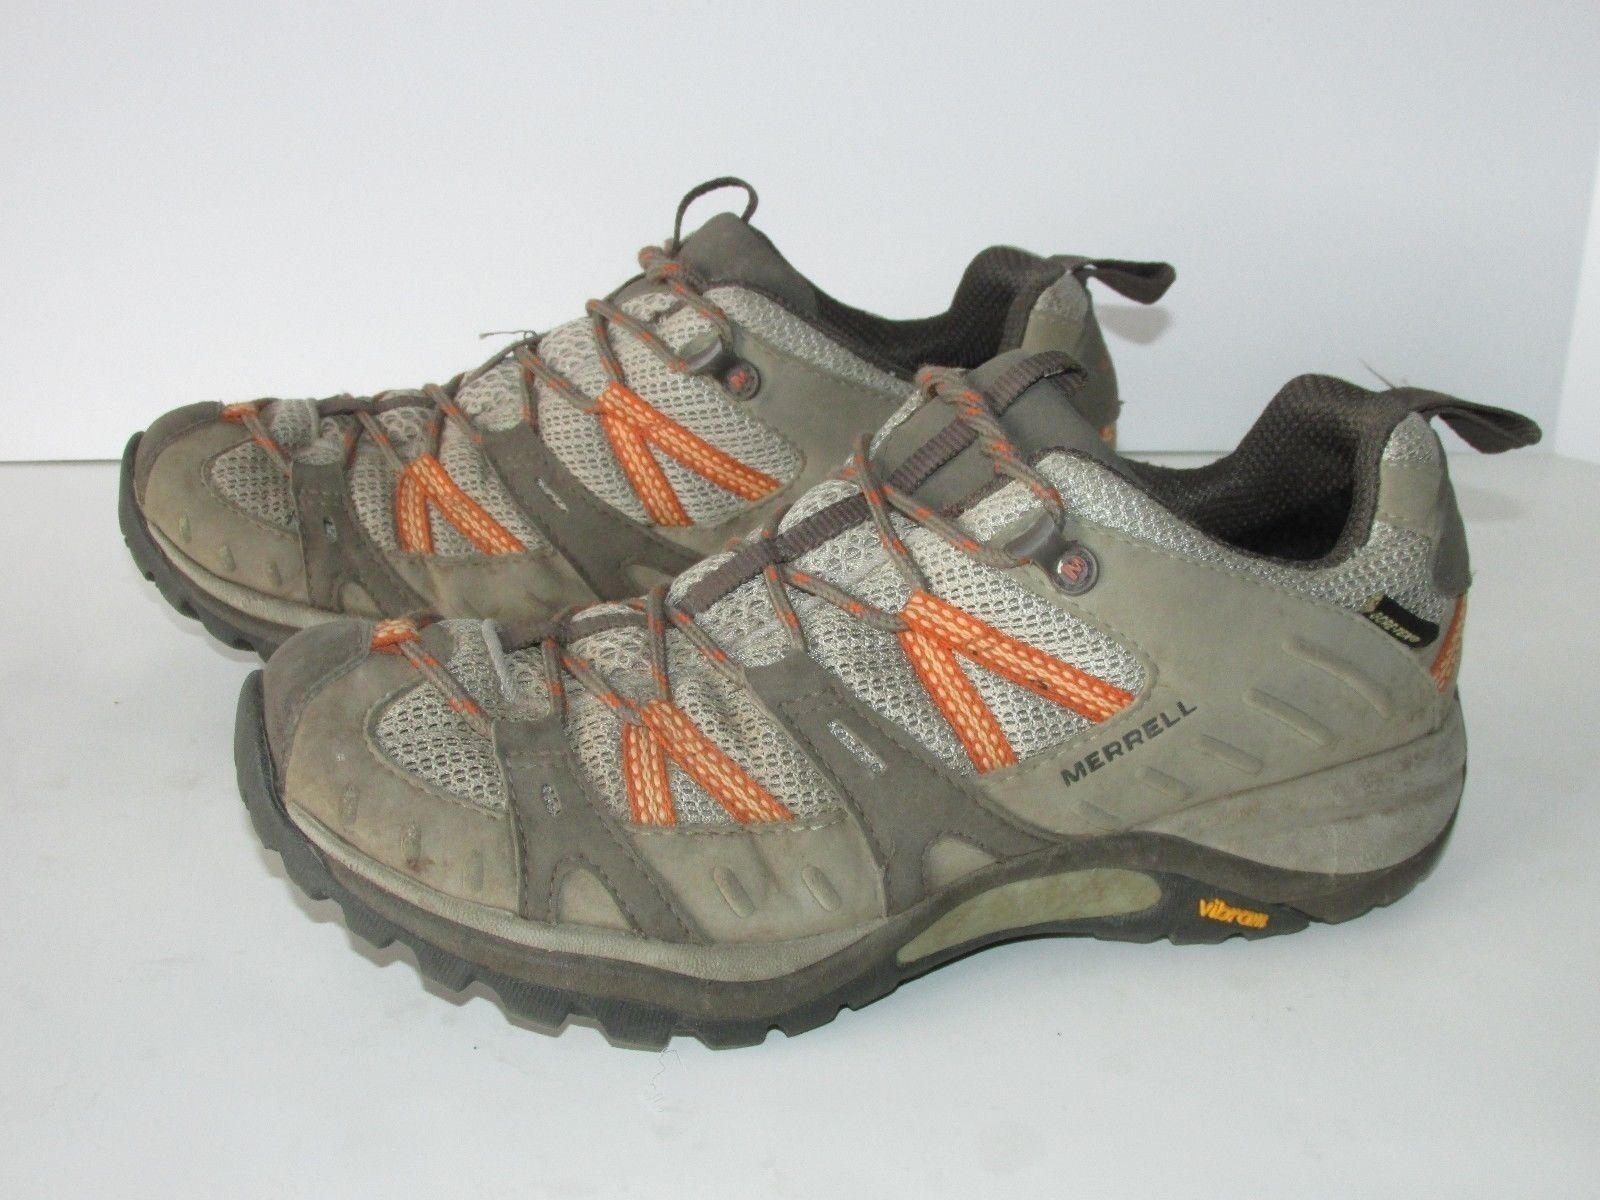 Merrell Siren Sport GTX XCR Brown Orange Hiking Tail Shoes Women's 9M